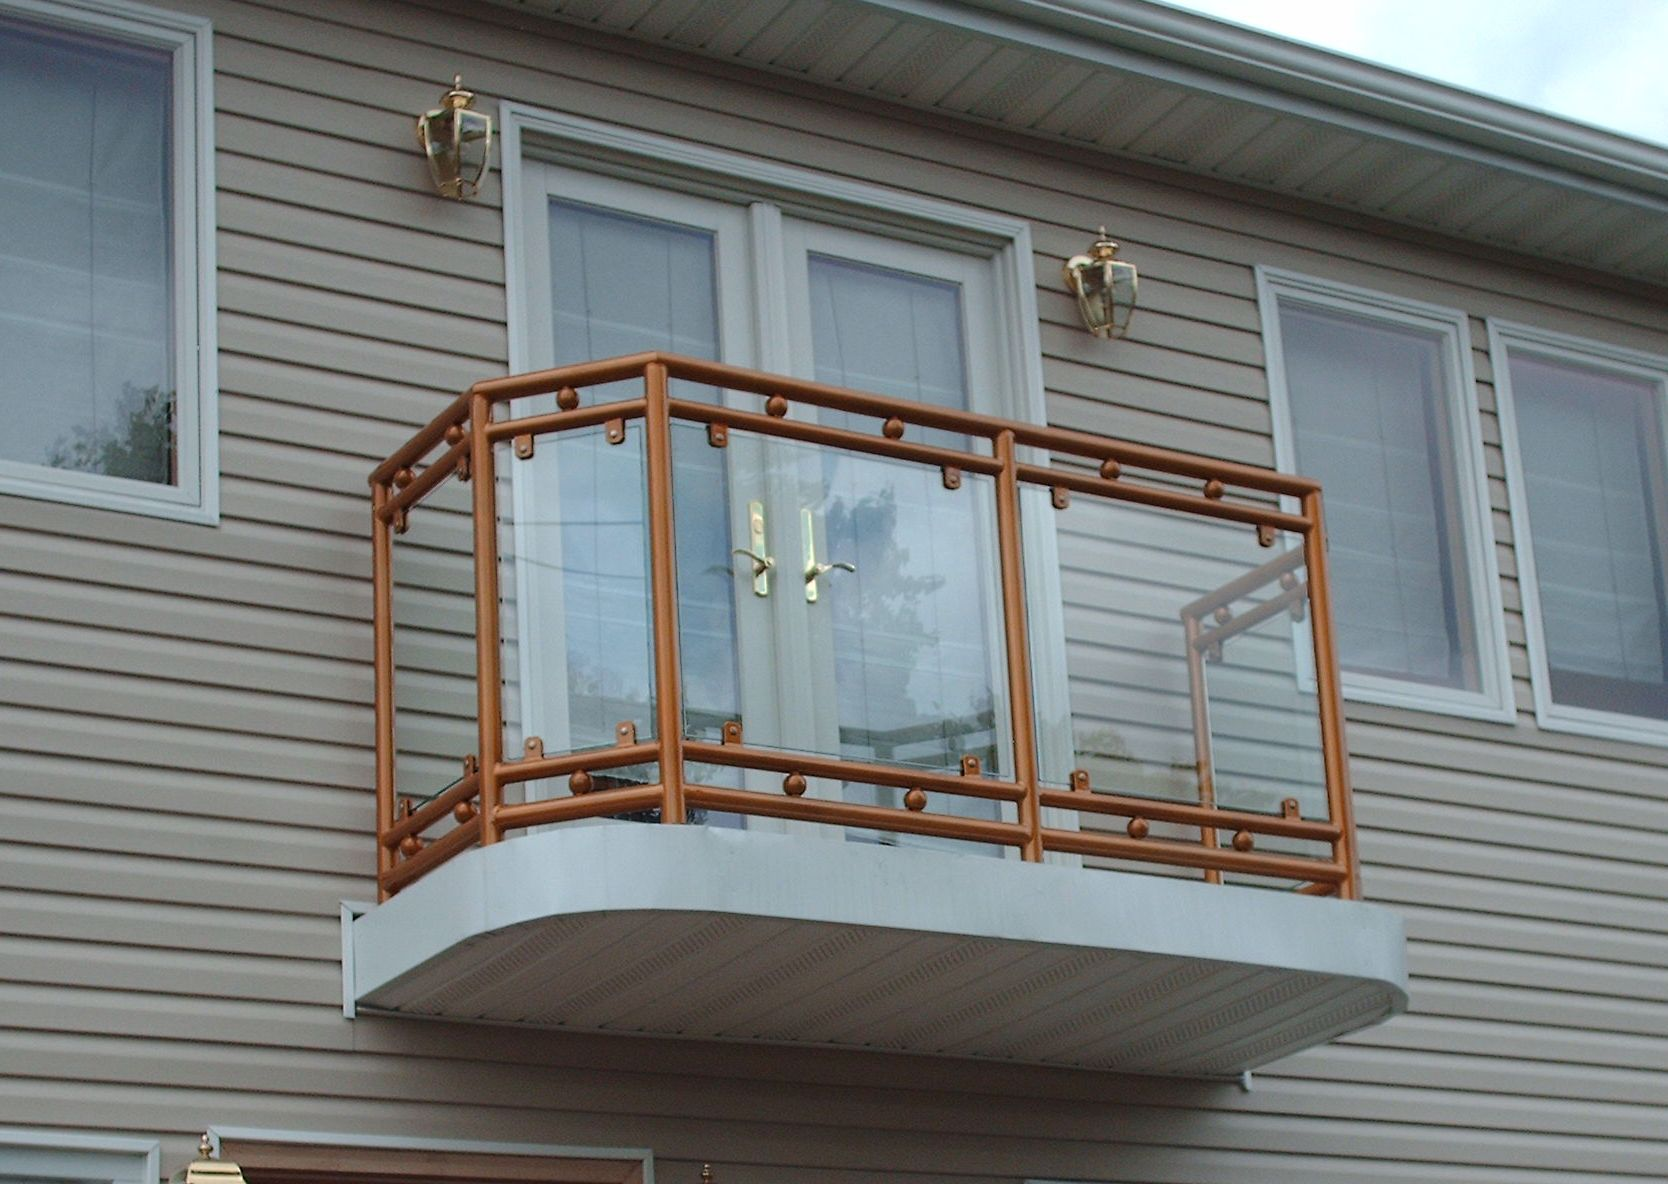 Guardian gate balcony balconies pinterest balcony for Best house balcony design